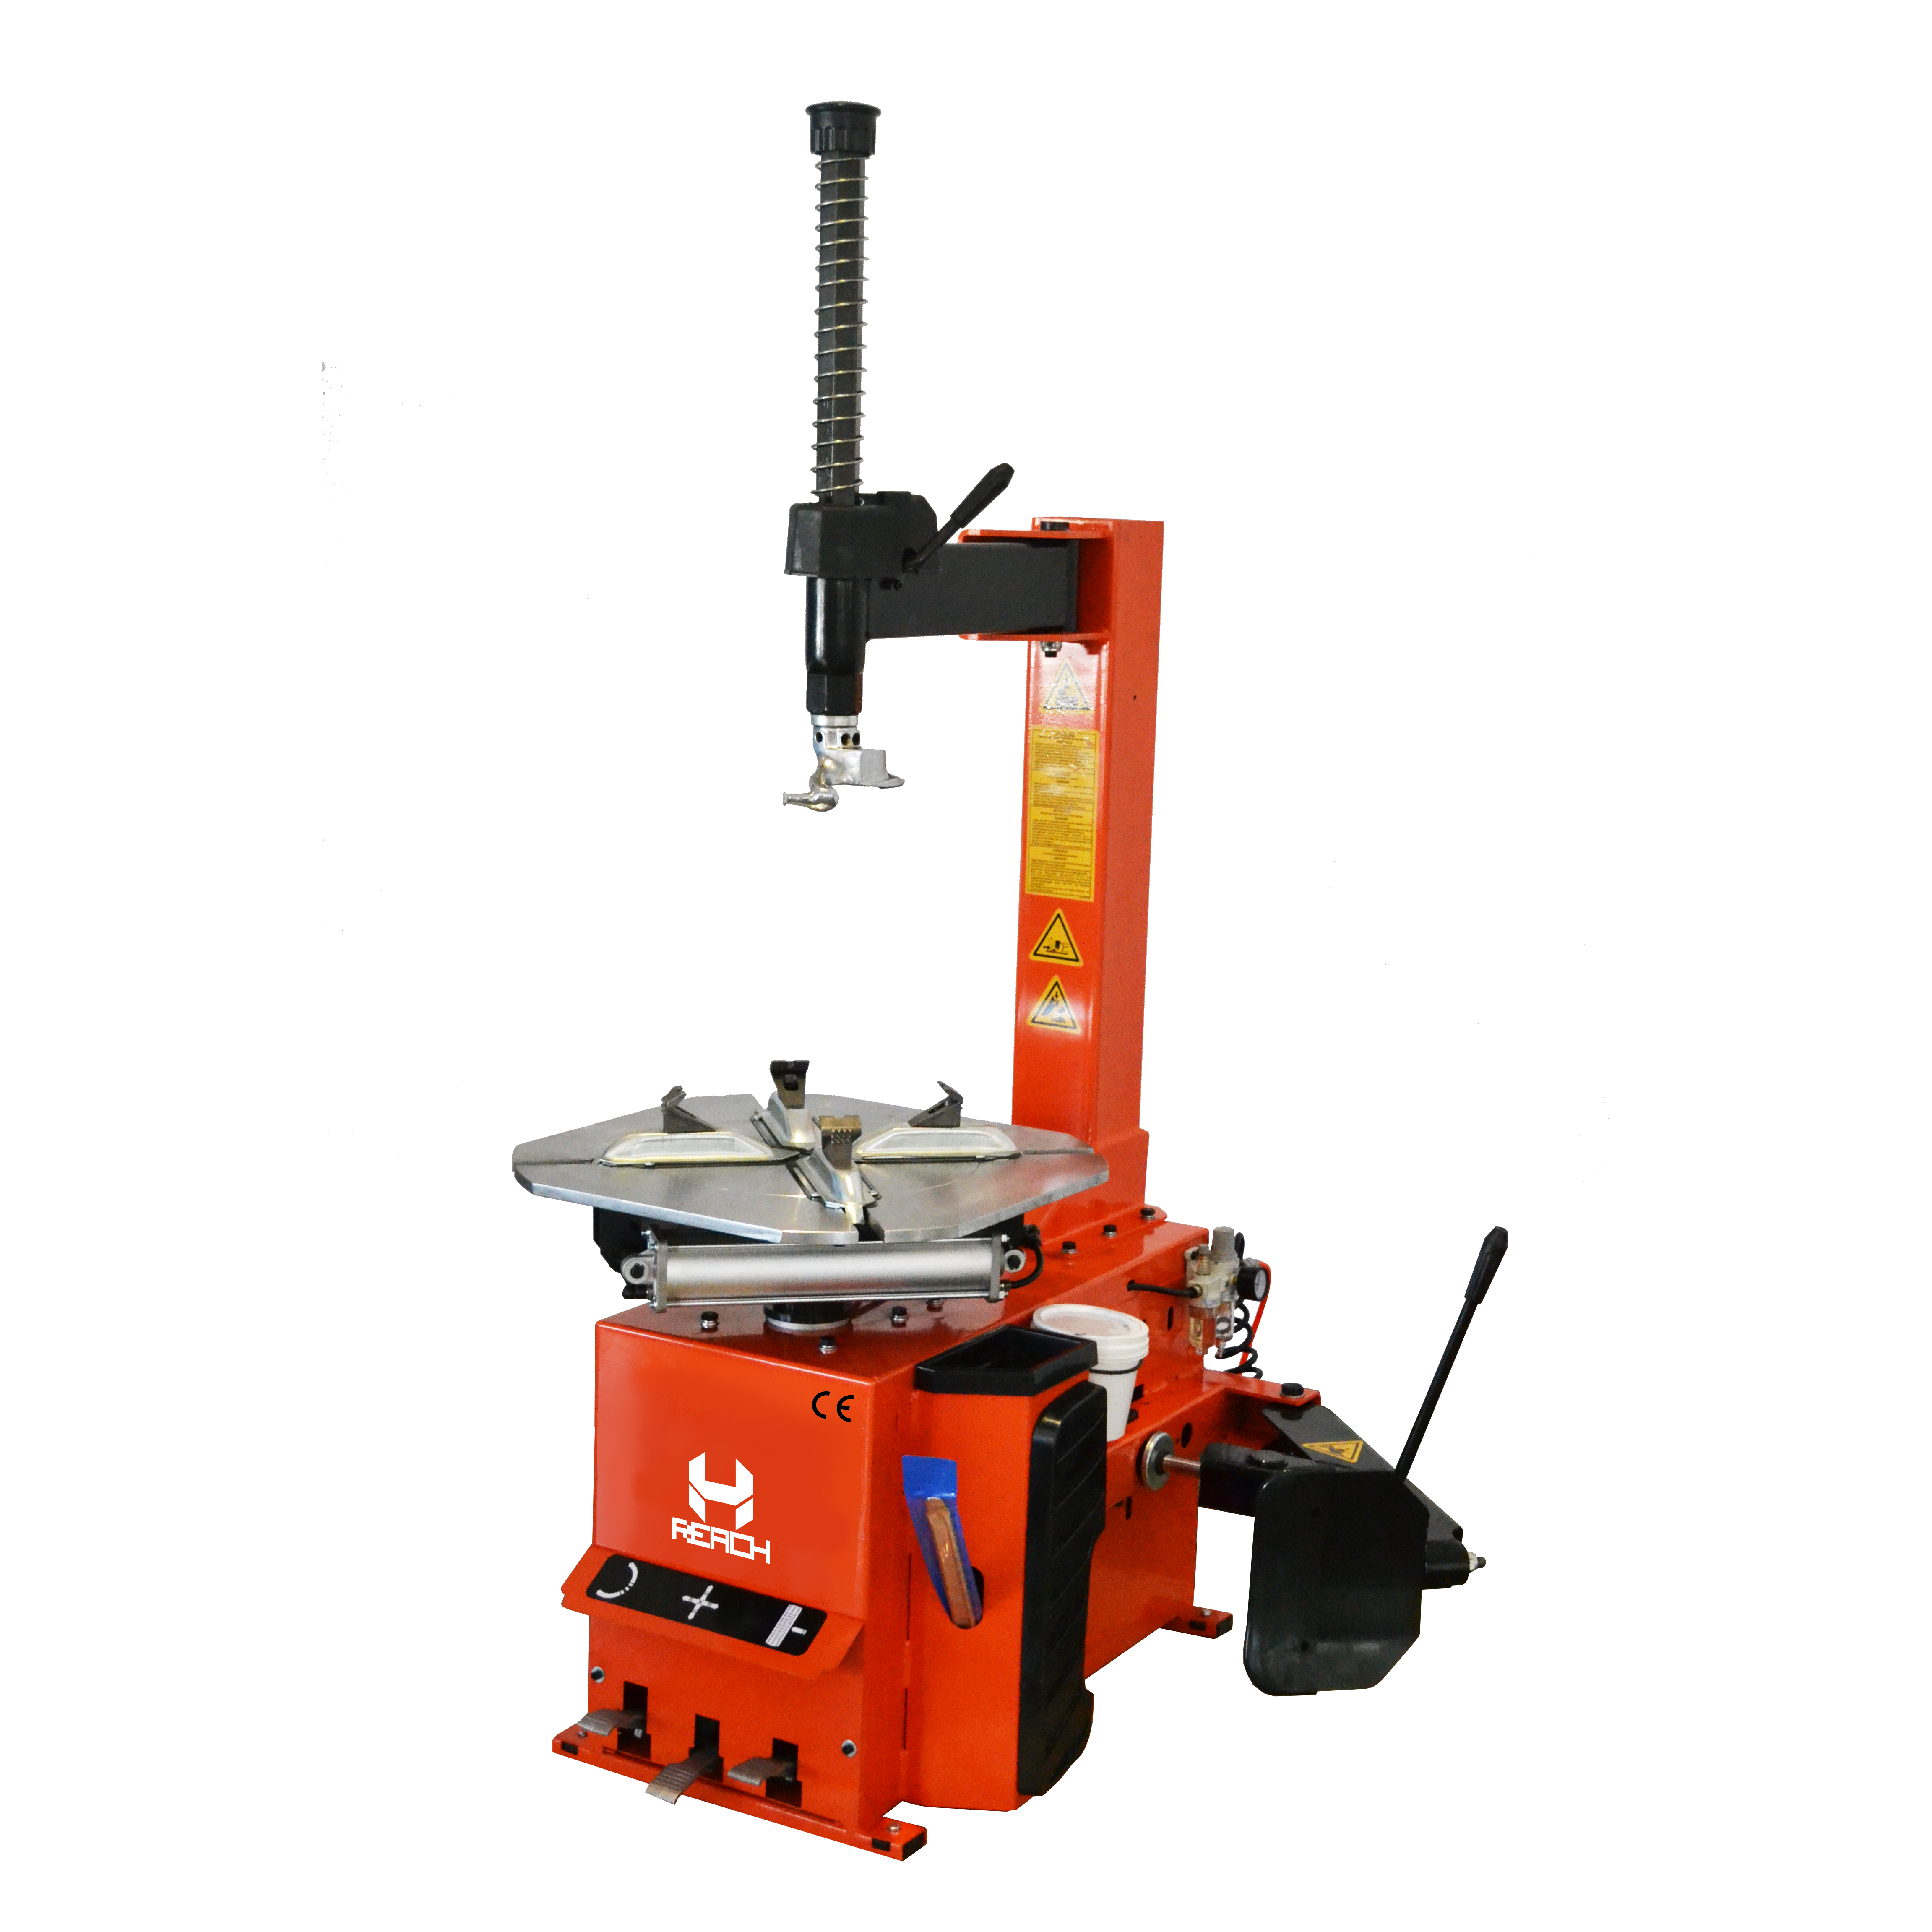 RH-620 best selling tire changer Featured Image